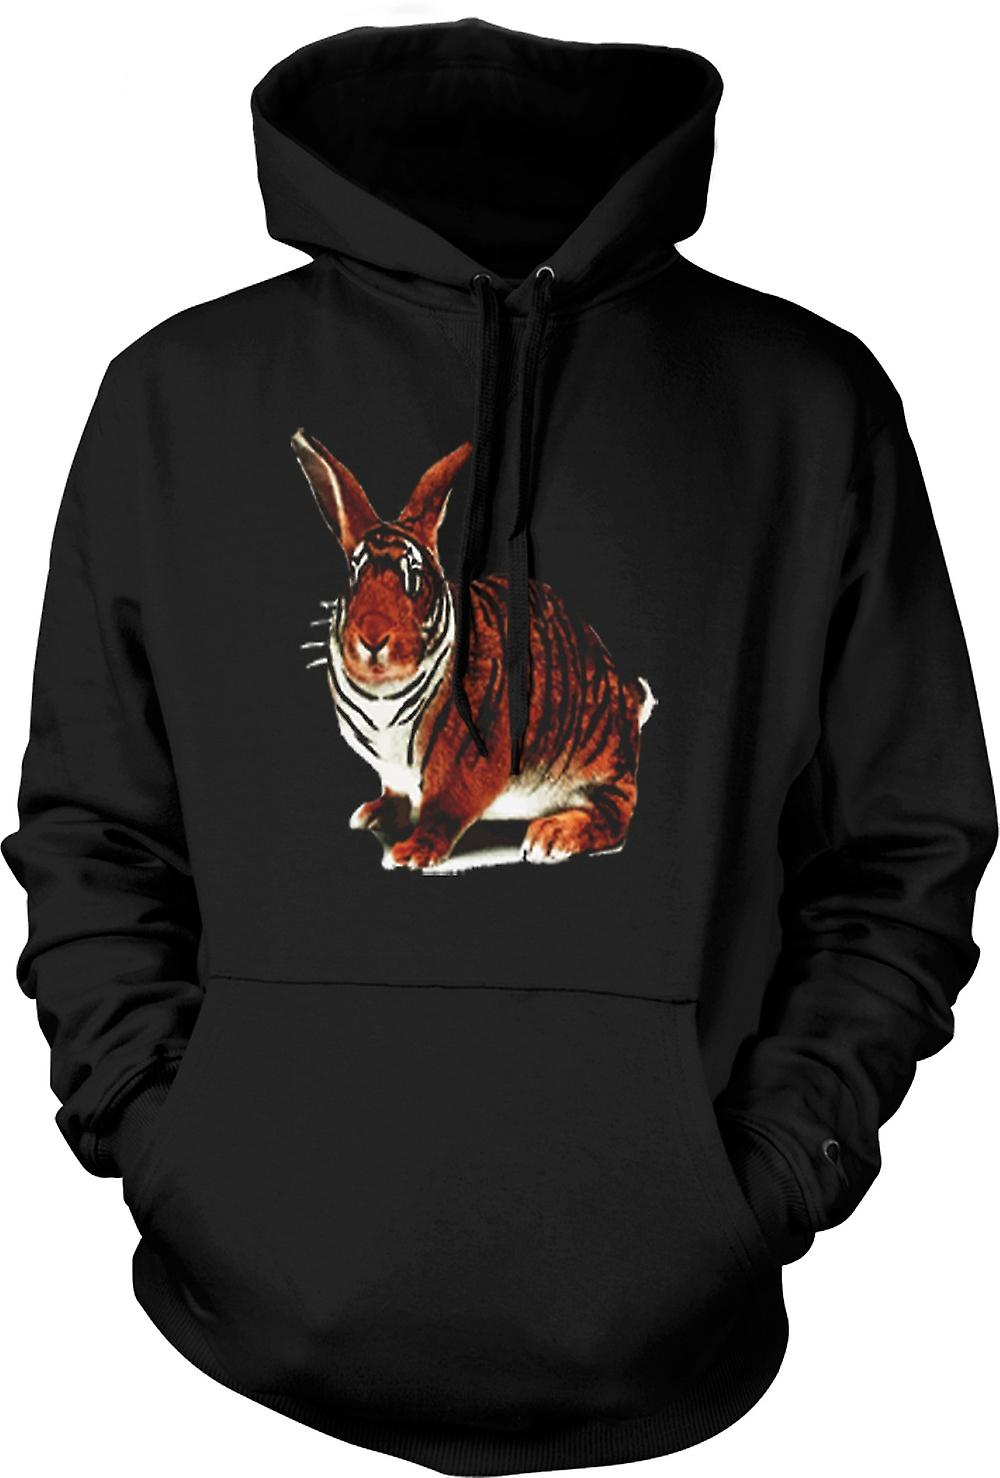 Kids Hoodie - Tiger Rabbit Pop Art Design